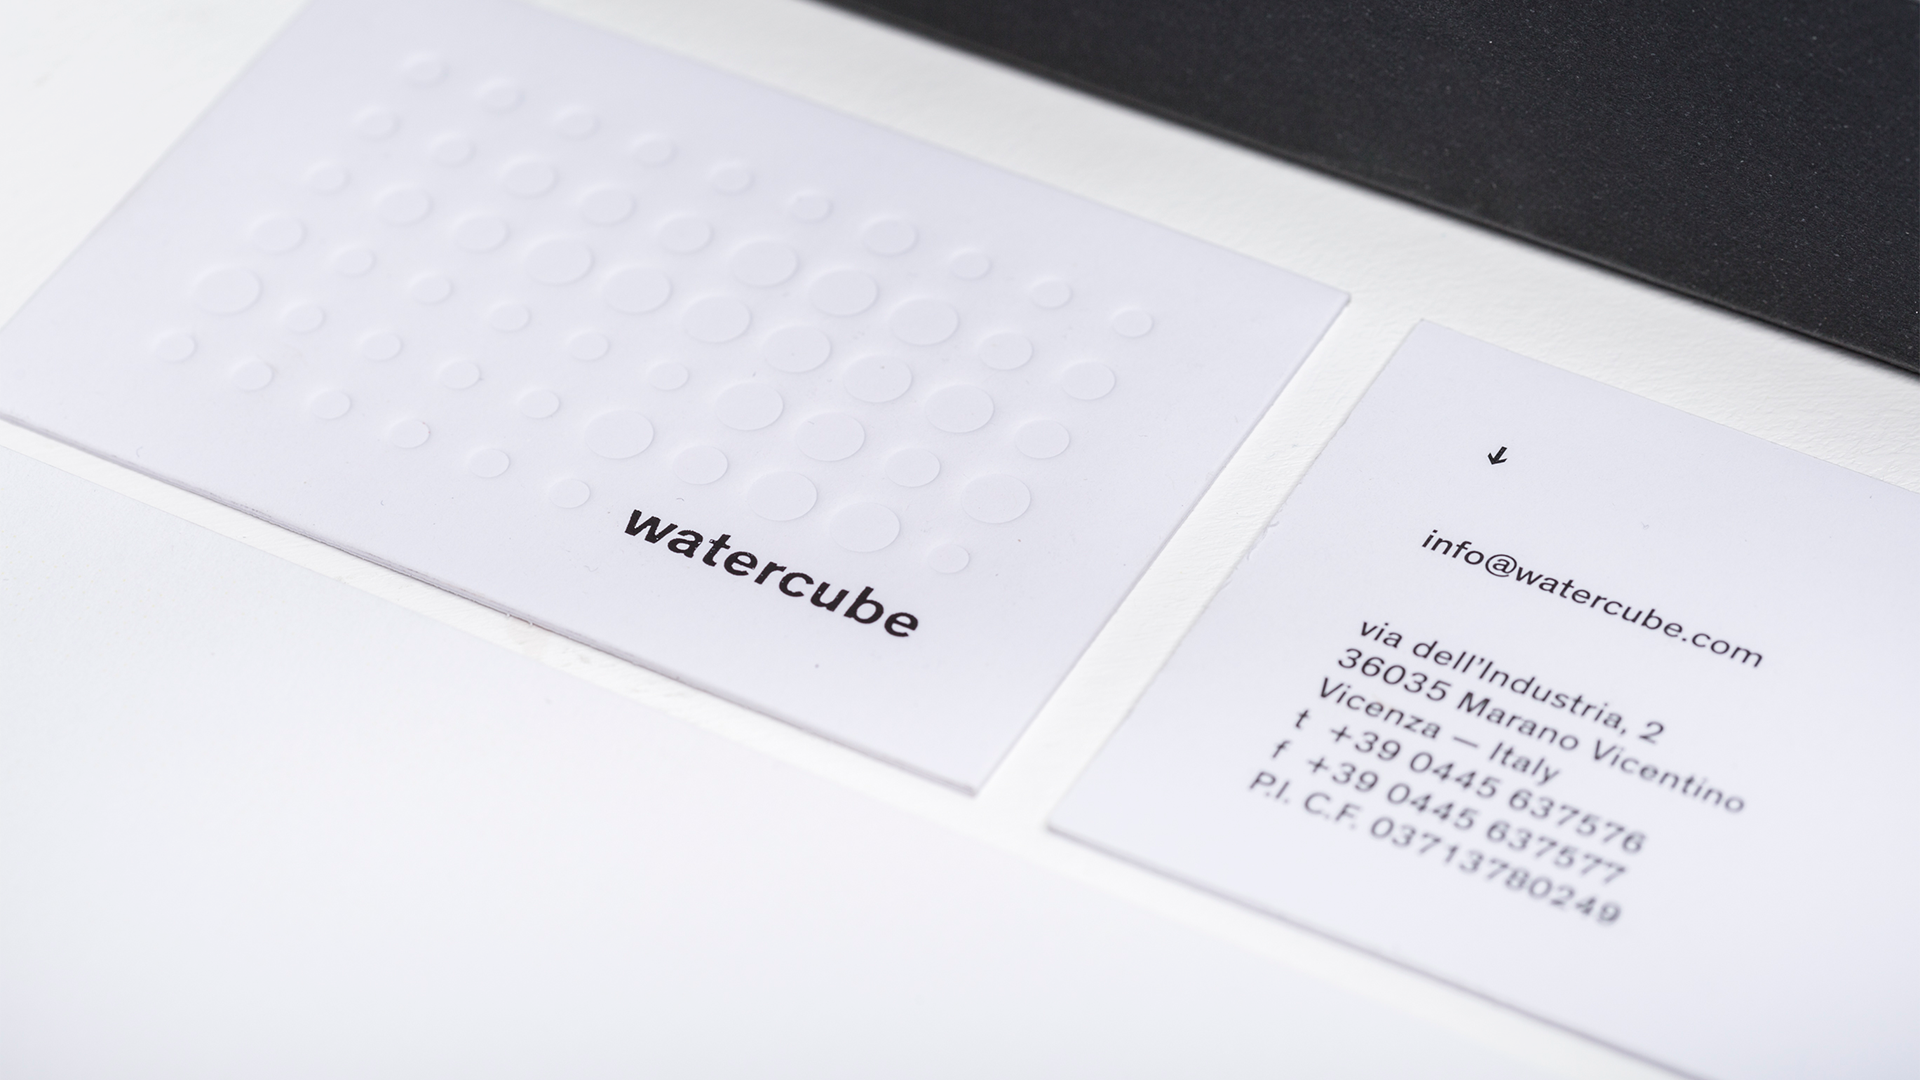 watercube business card